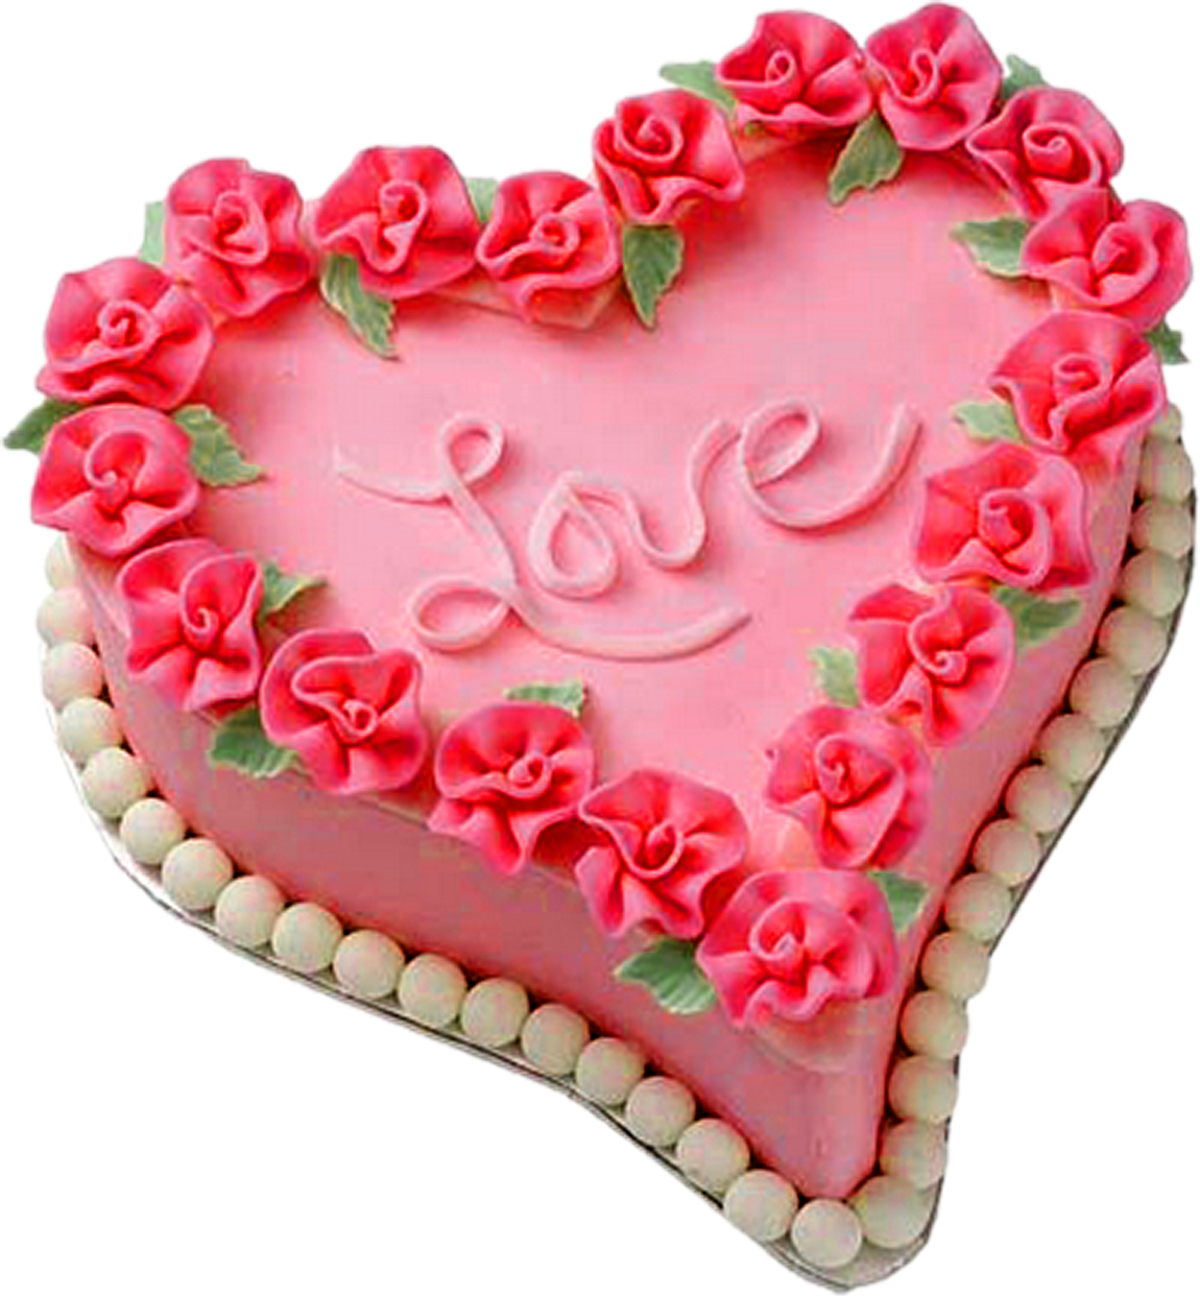 Images Of Cake For Lover : Image Gallery Love Cake